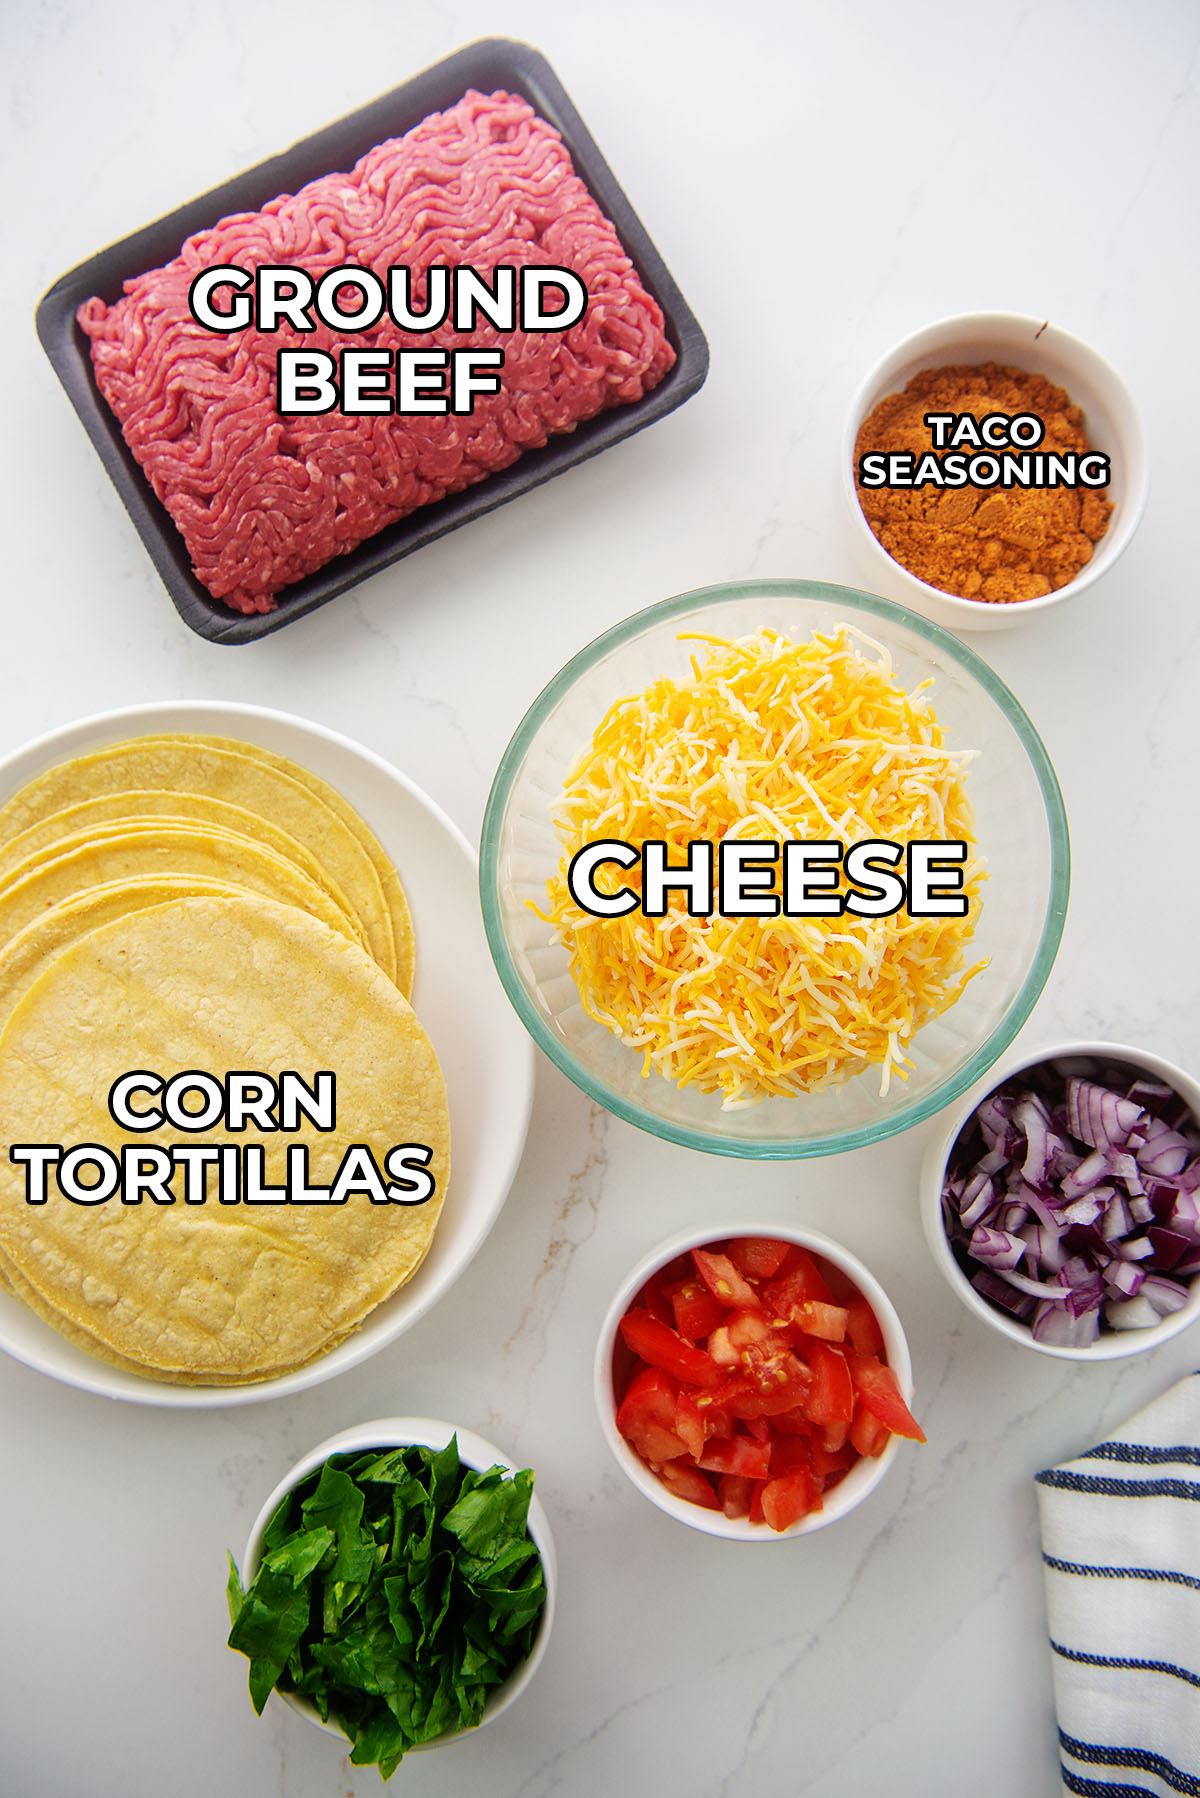 Ingredients for fried tacos spread out on a counter.